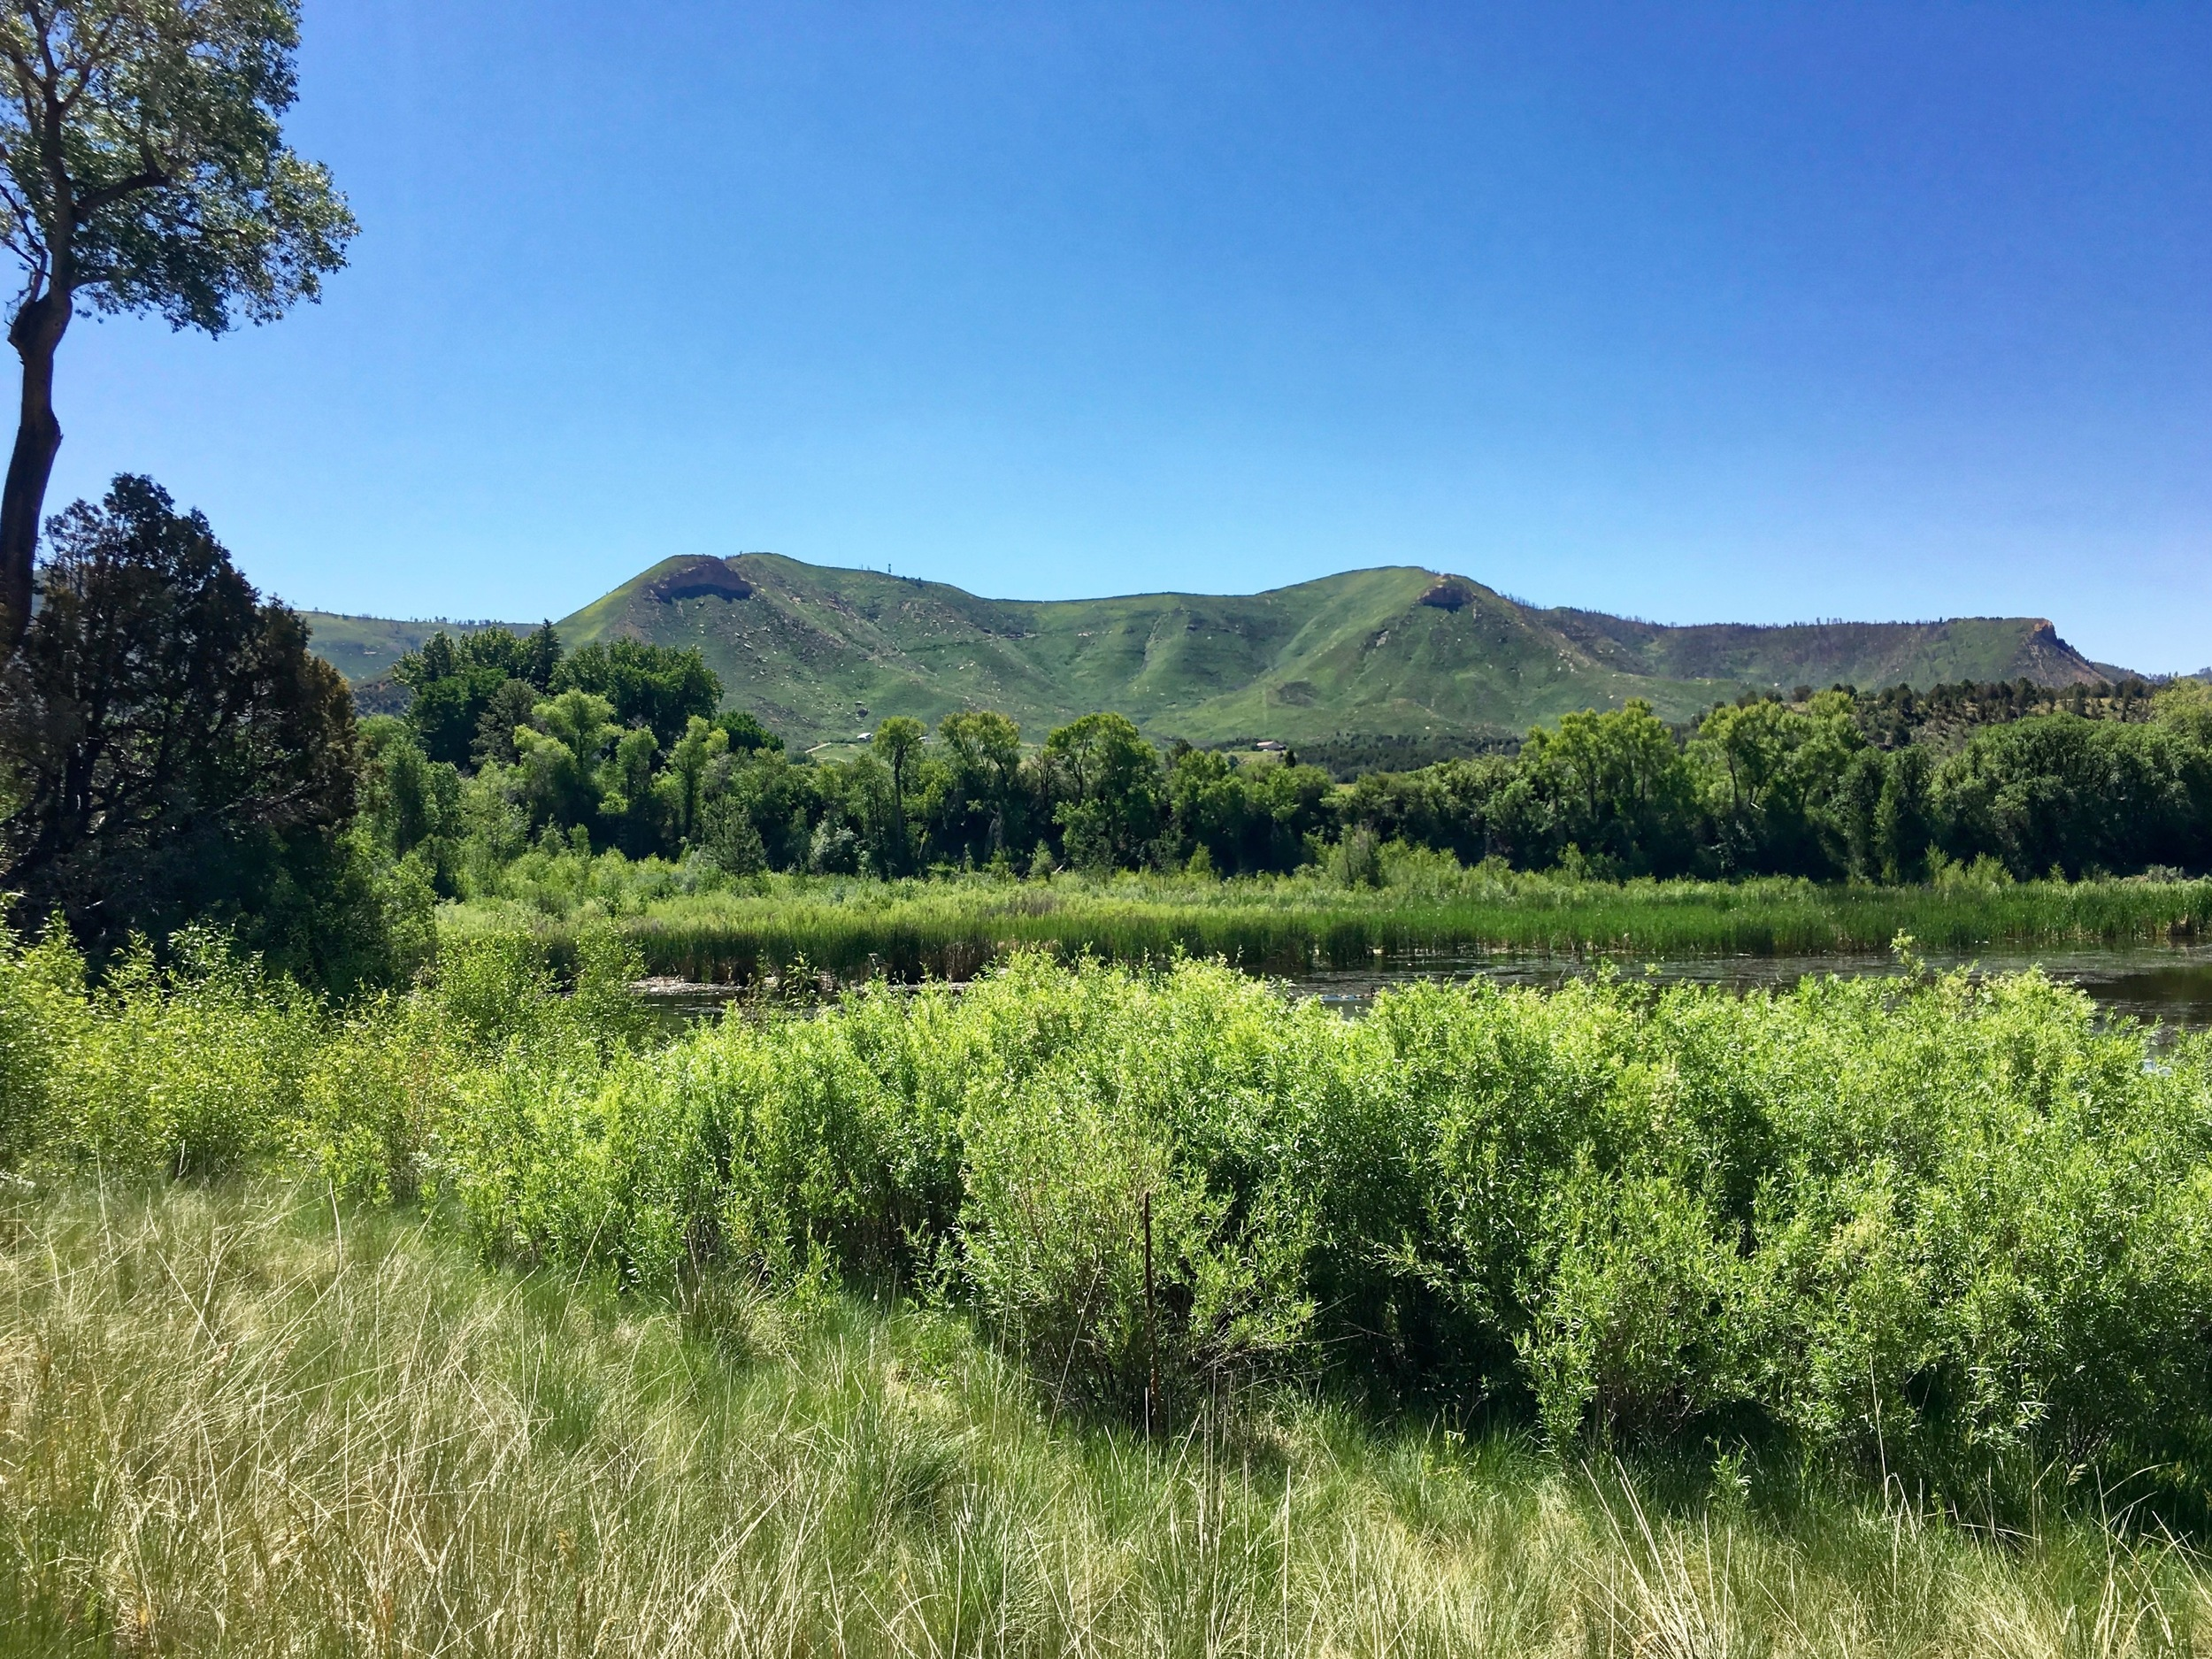 The view near the famous James Ranch, where restorative agriculture is practiced by 3 generations of the James family